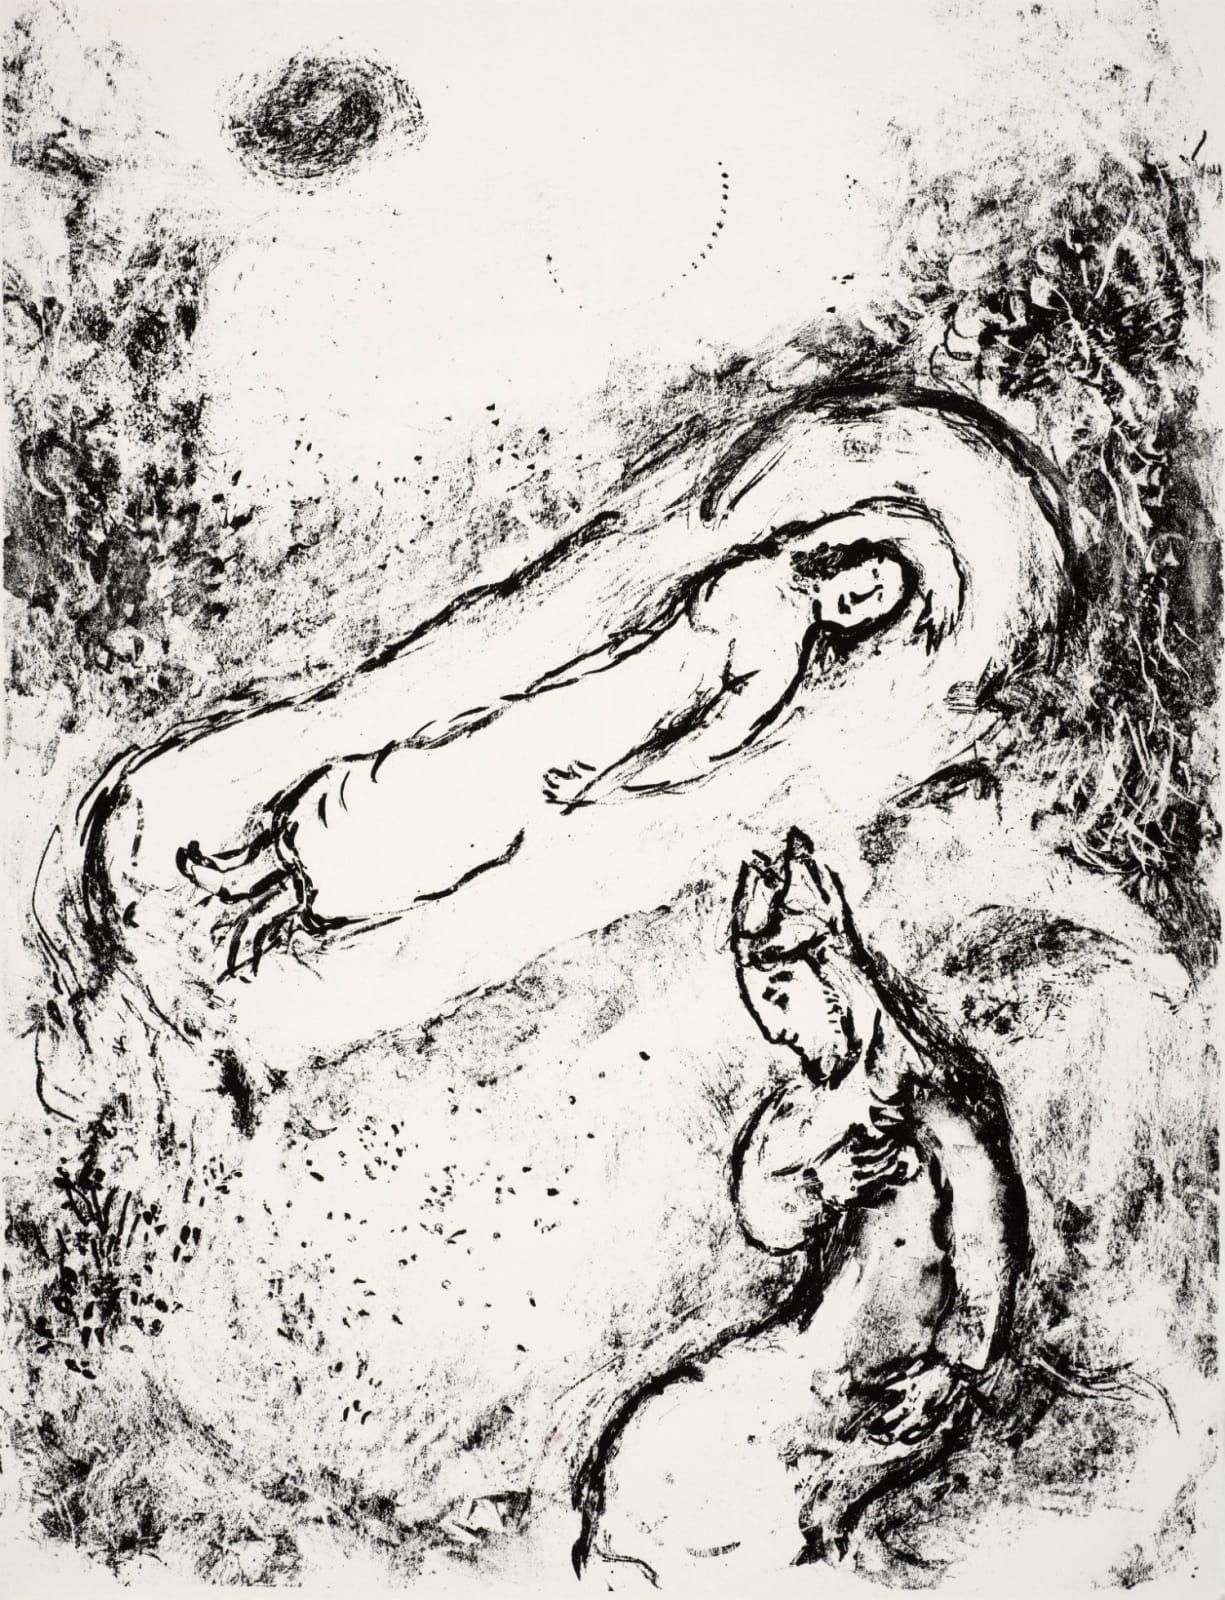 Marc Chagall (1887-1985) Miranda sleeps (Series: Shakespeare The Tempest) 1975 Lithograph 42.5 x 32.5 cm Ben Uri Collection © Marc Chagall estate To see and discover more about this artist click here